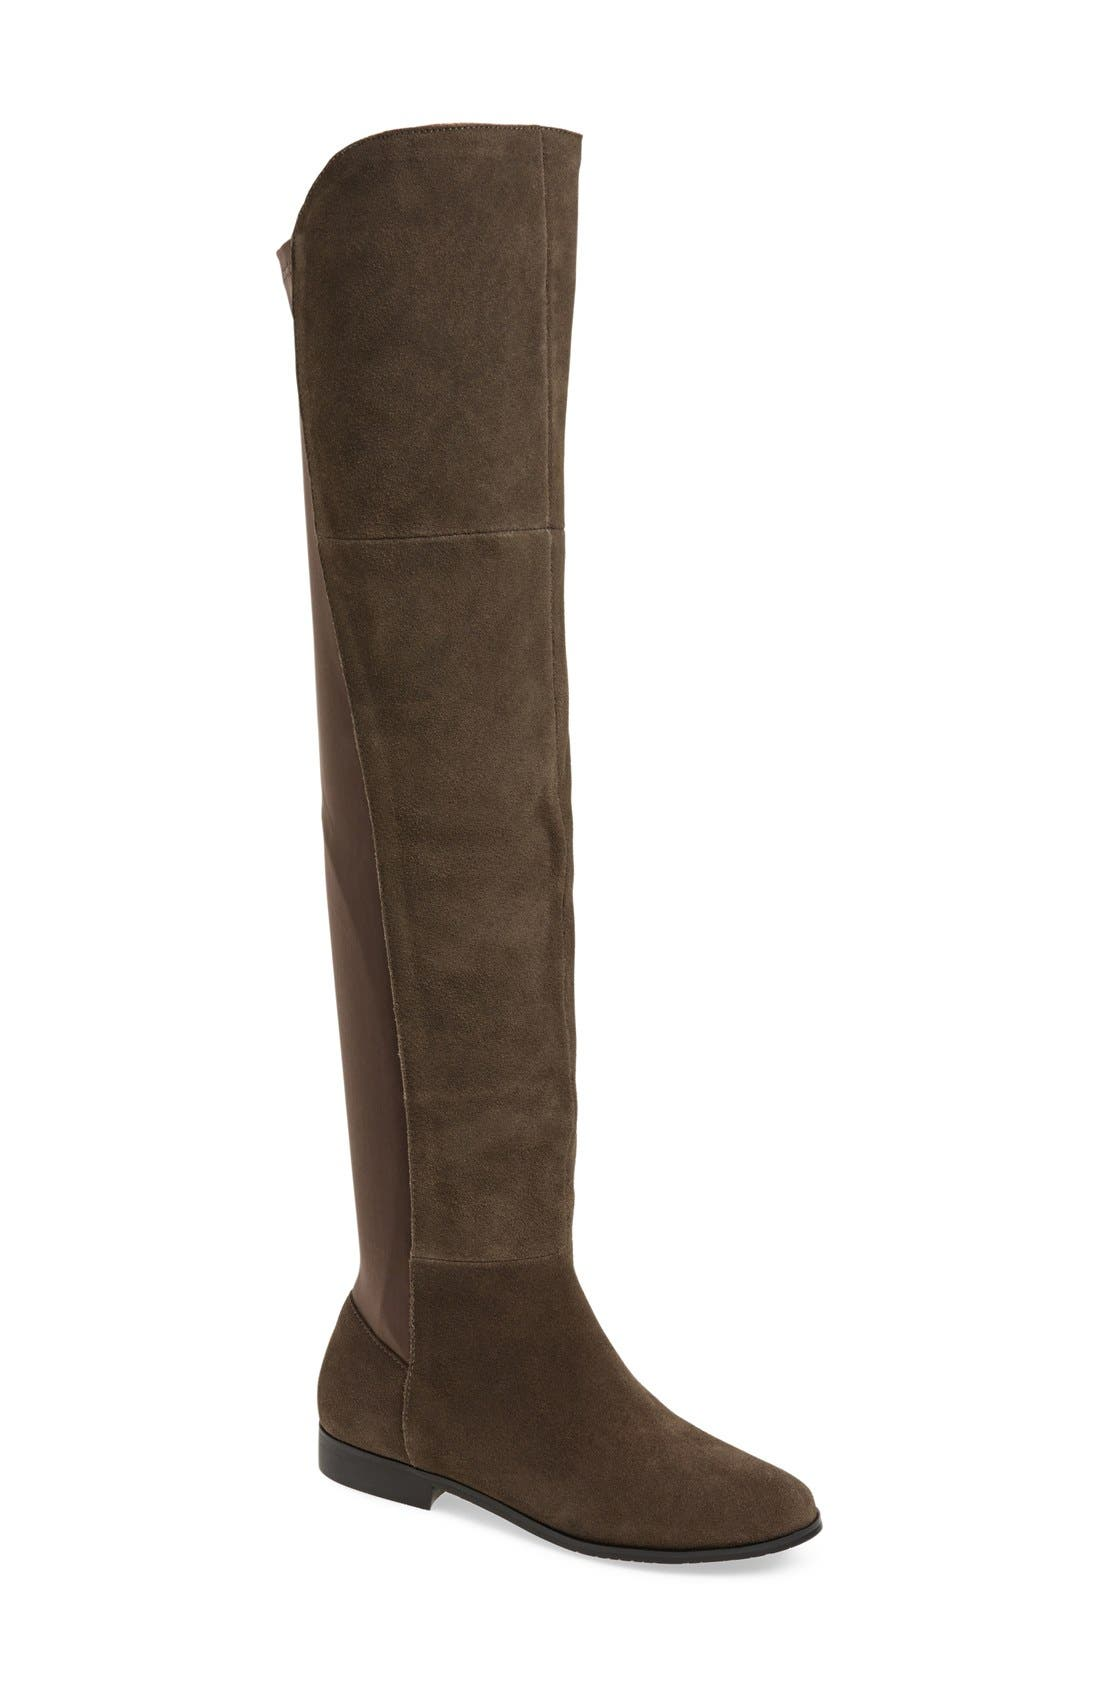 Main Image - Chinese Laundry 'Radiance' Over The Knee Boot (Women)